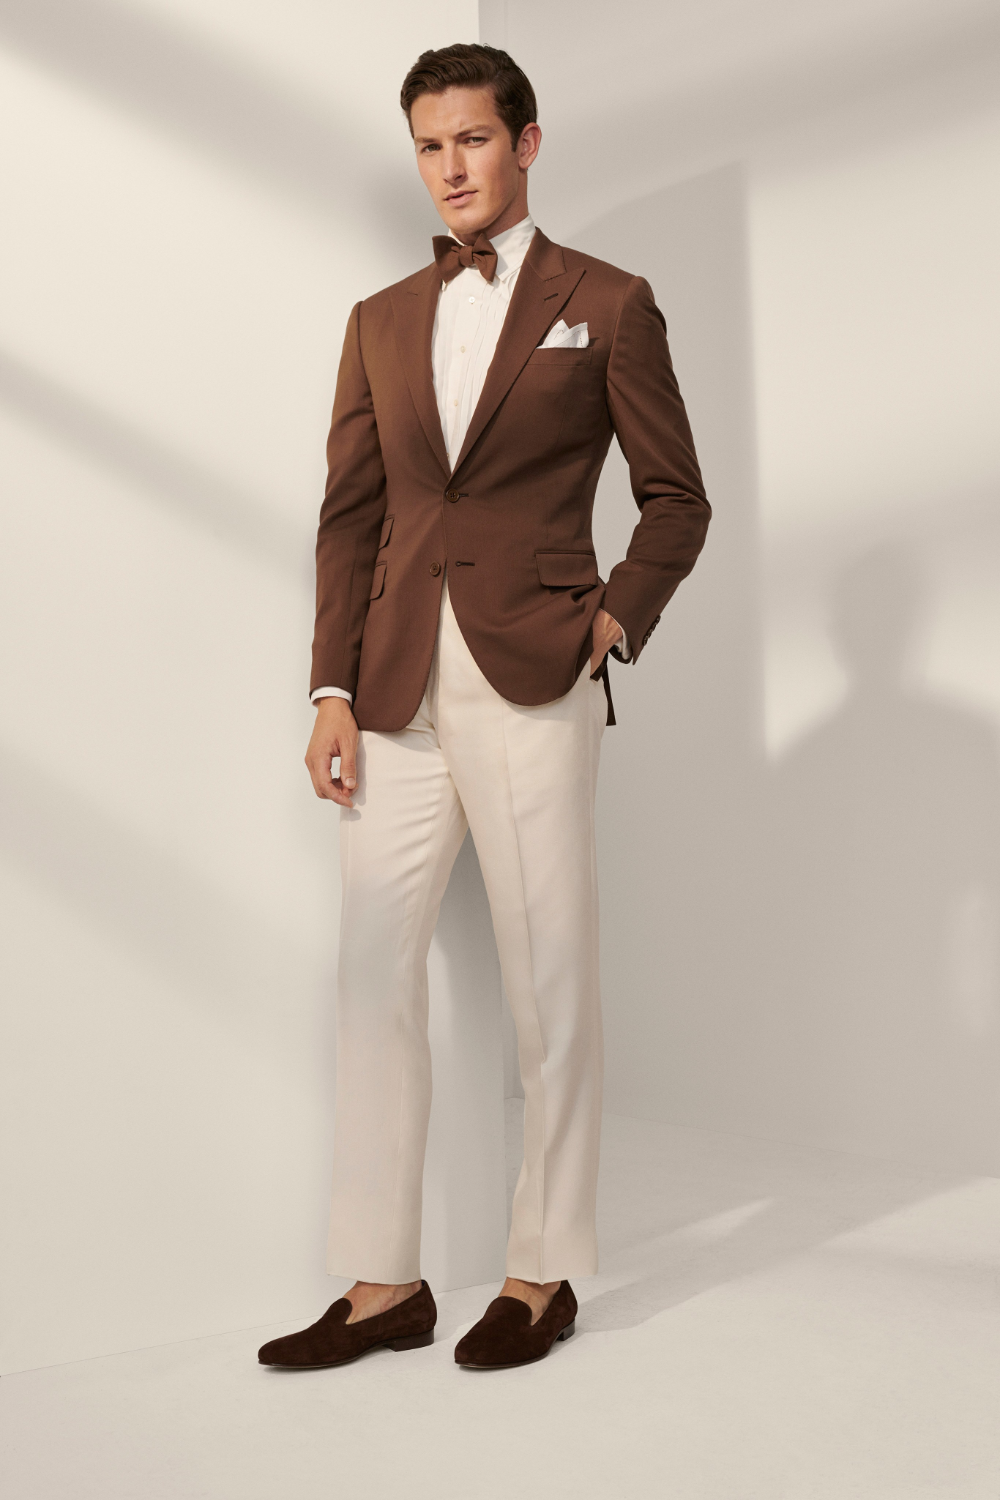 Ralph Lauren Spring 2020 Menswear Fashion Show